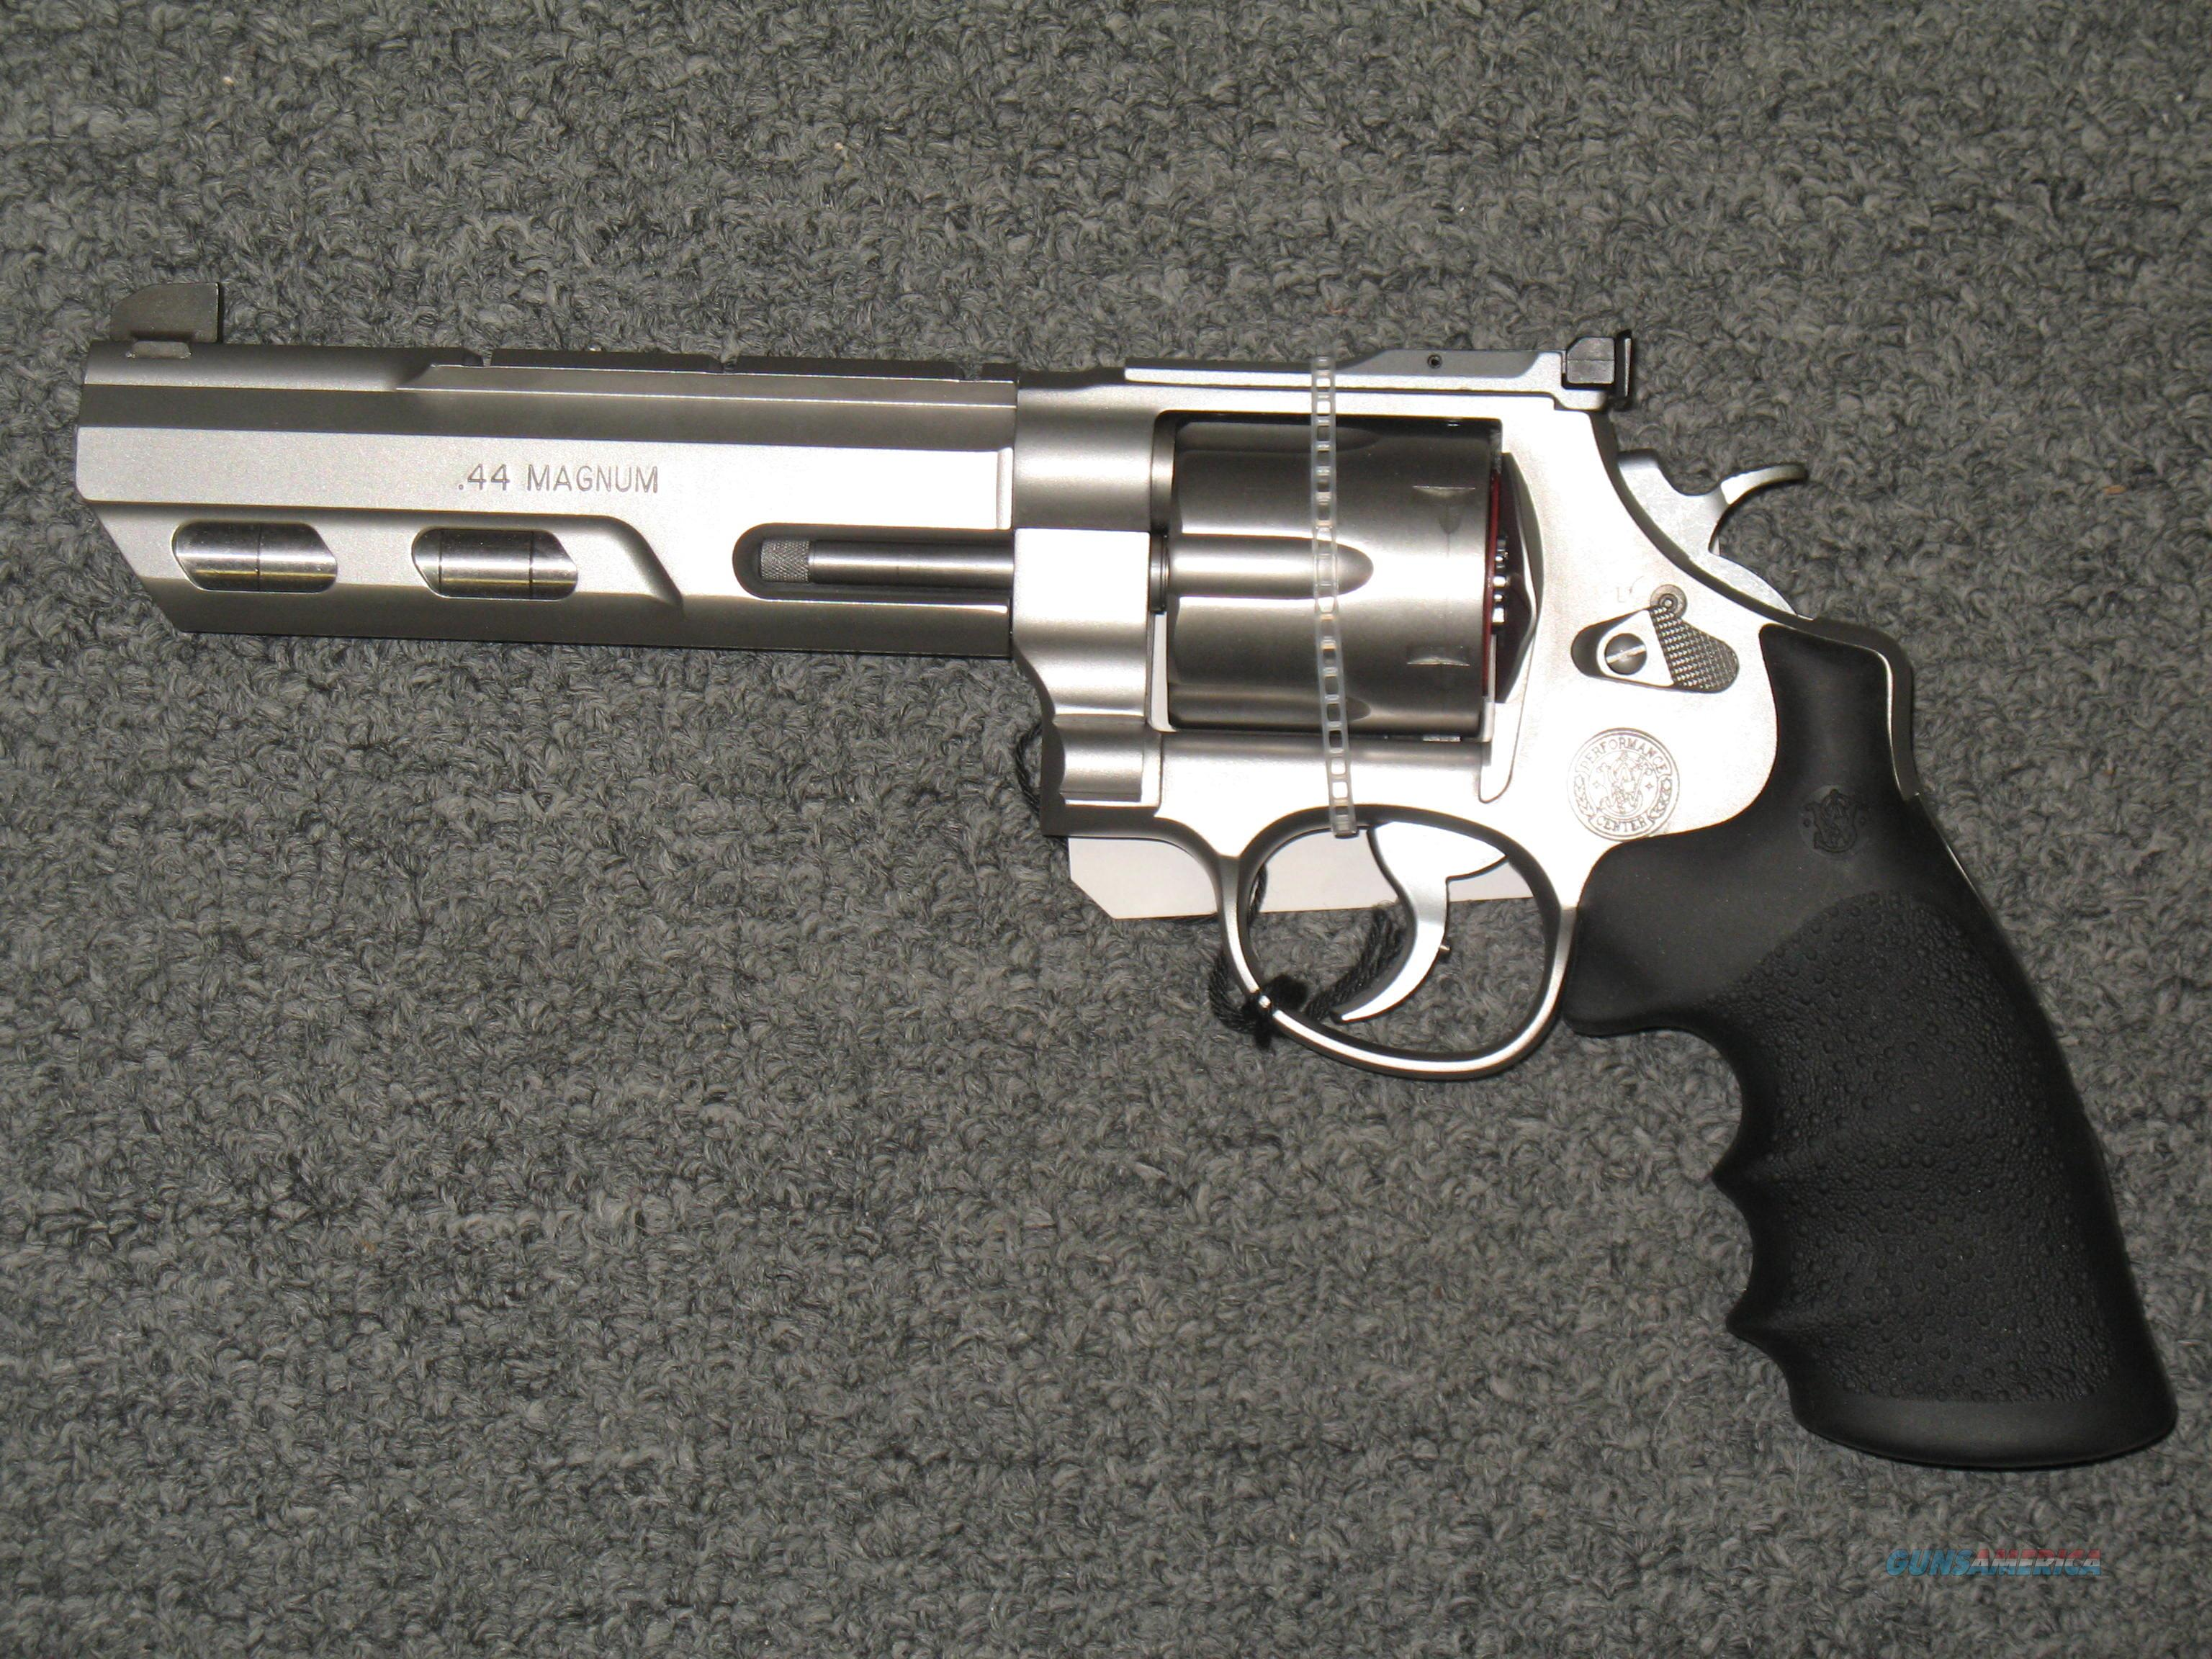 Smith & Wesson 629-6 Competitor (Performance Center) (170320)  Guns > Pistols > Smith & Wesson Revolvers > Full Frame Revolver